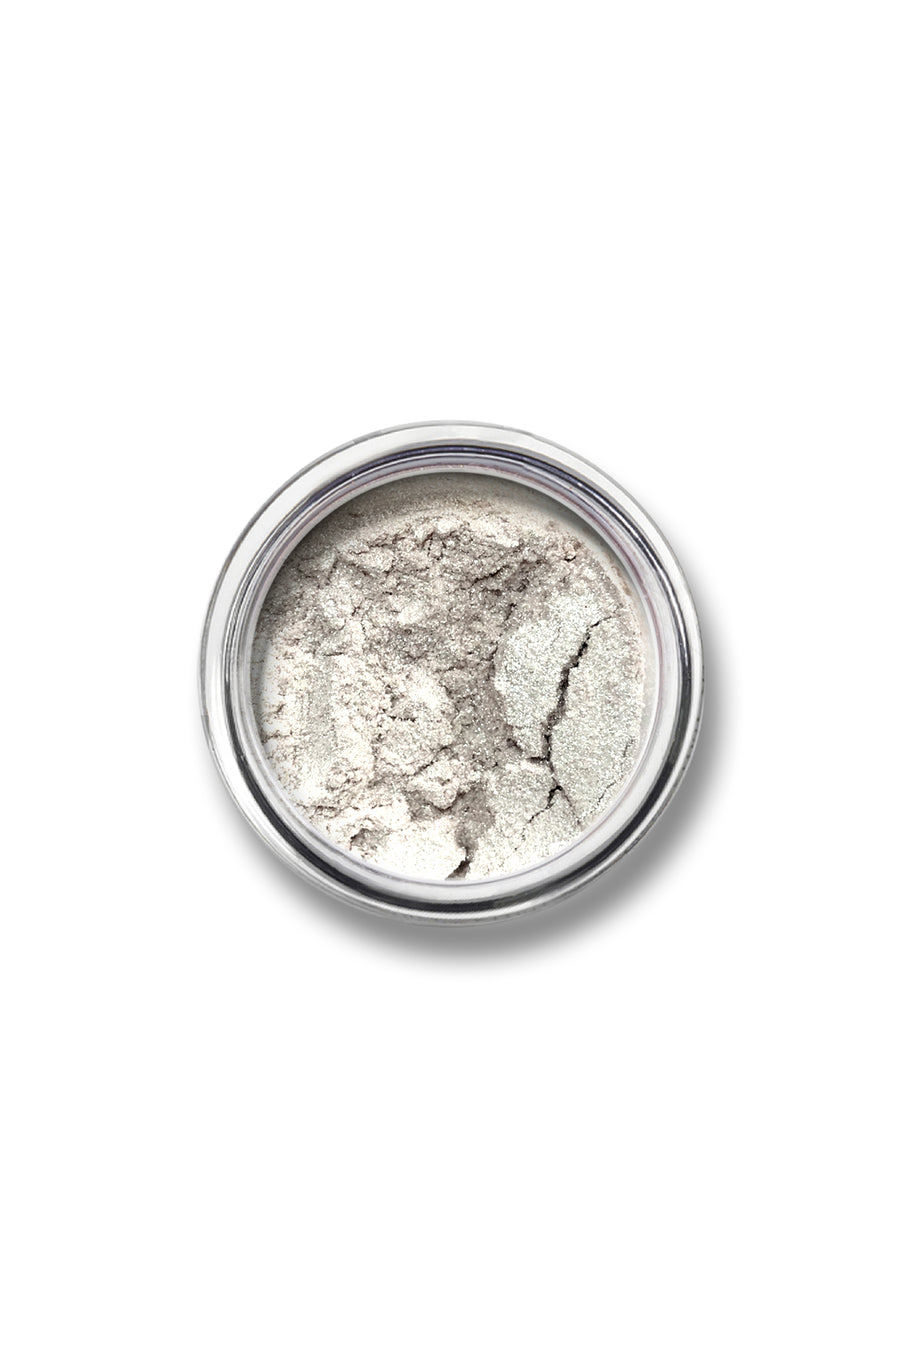 Shimmer Eyeshadow #40 - Shimmery White - Blend Mineral Cosmetics